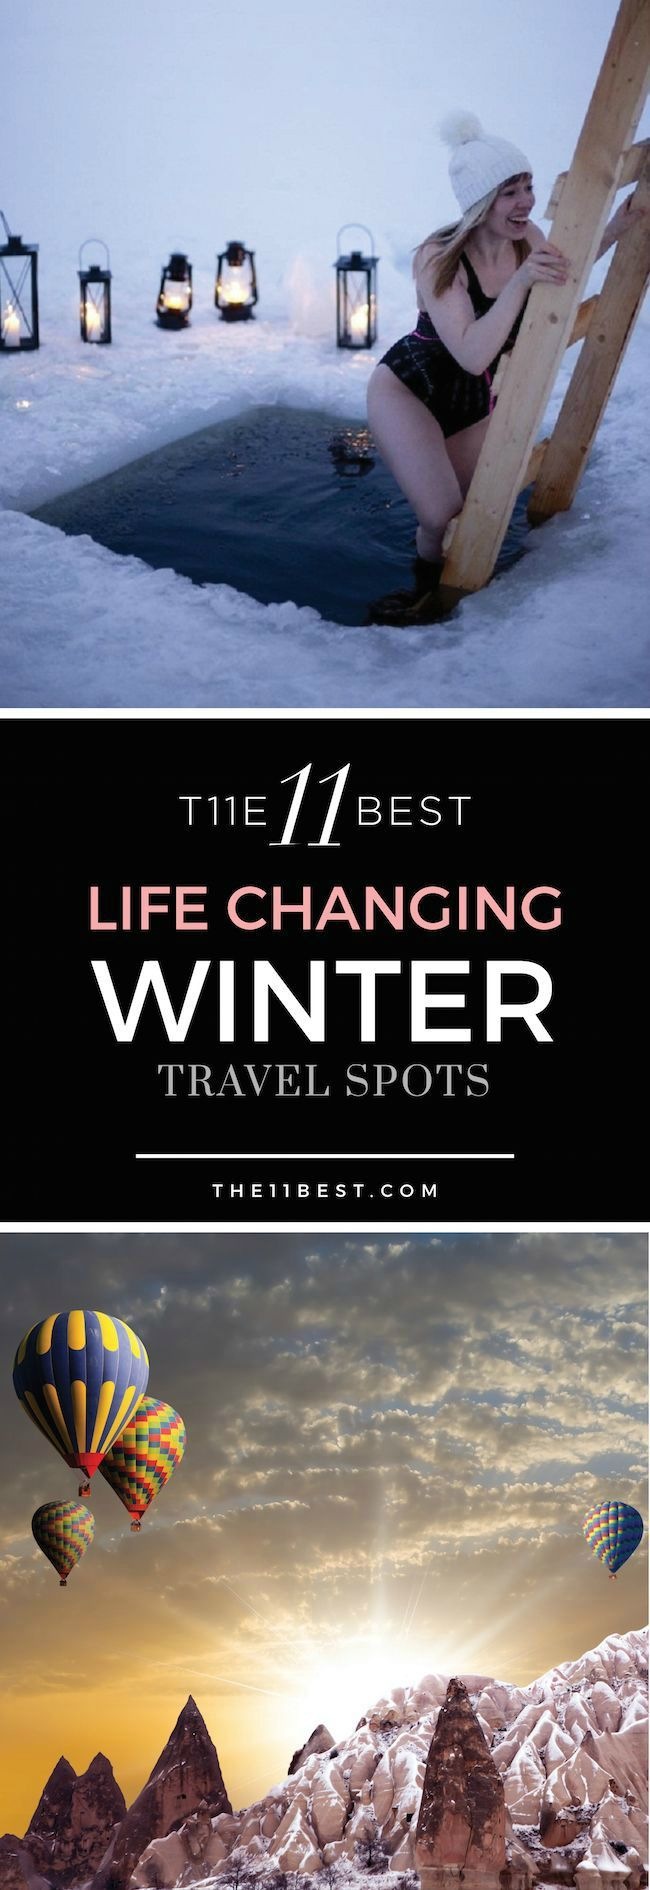 The 11 Best Life Changing Winter Travel Spots